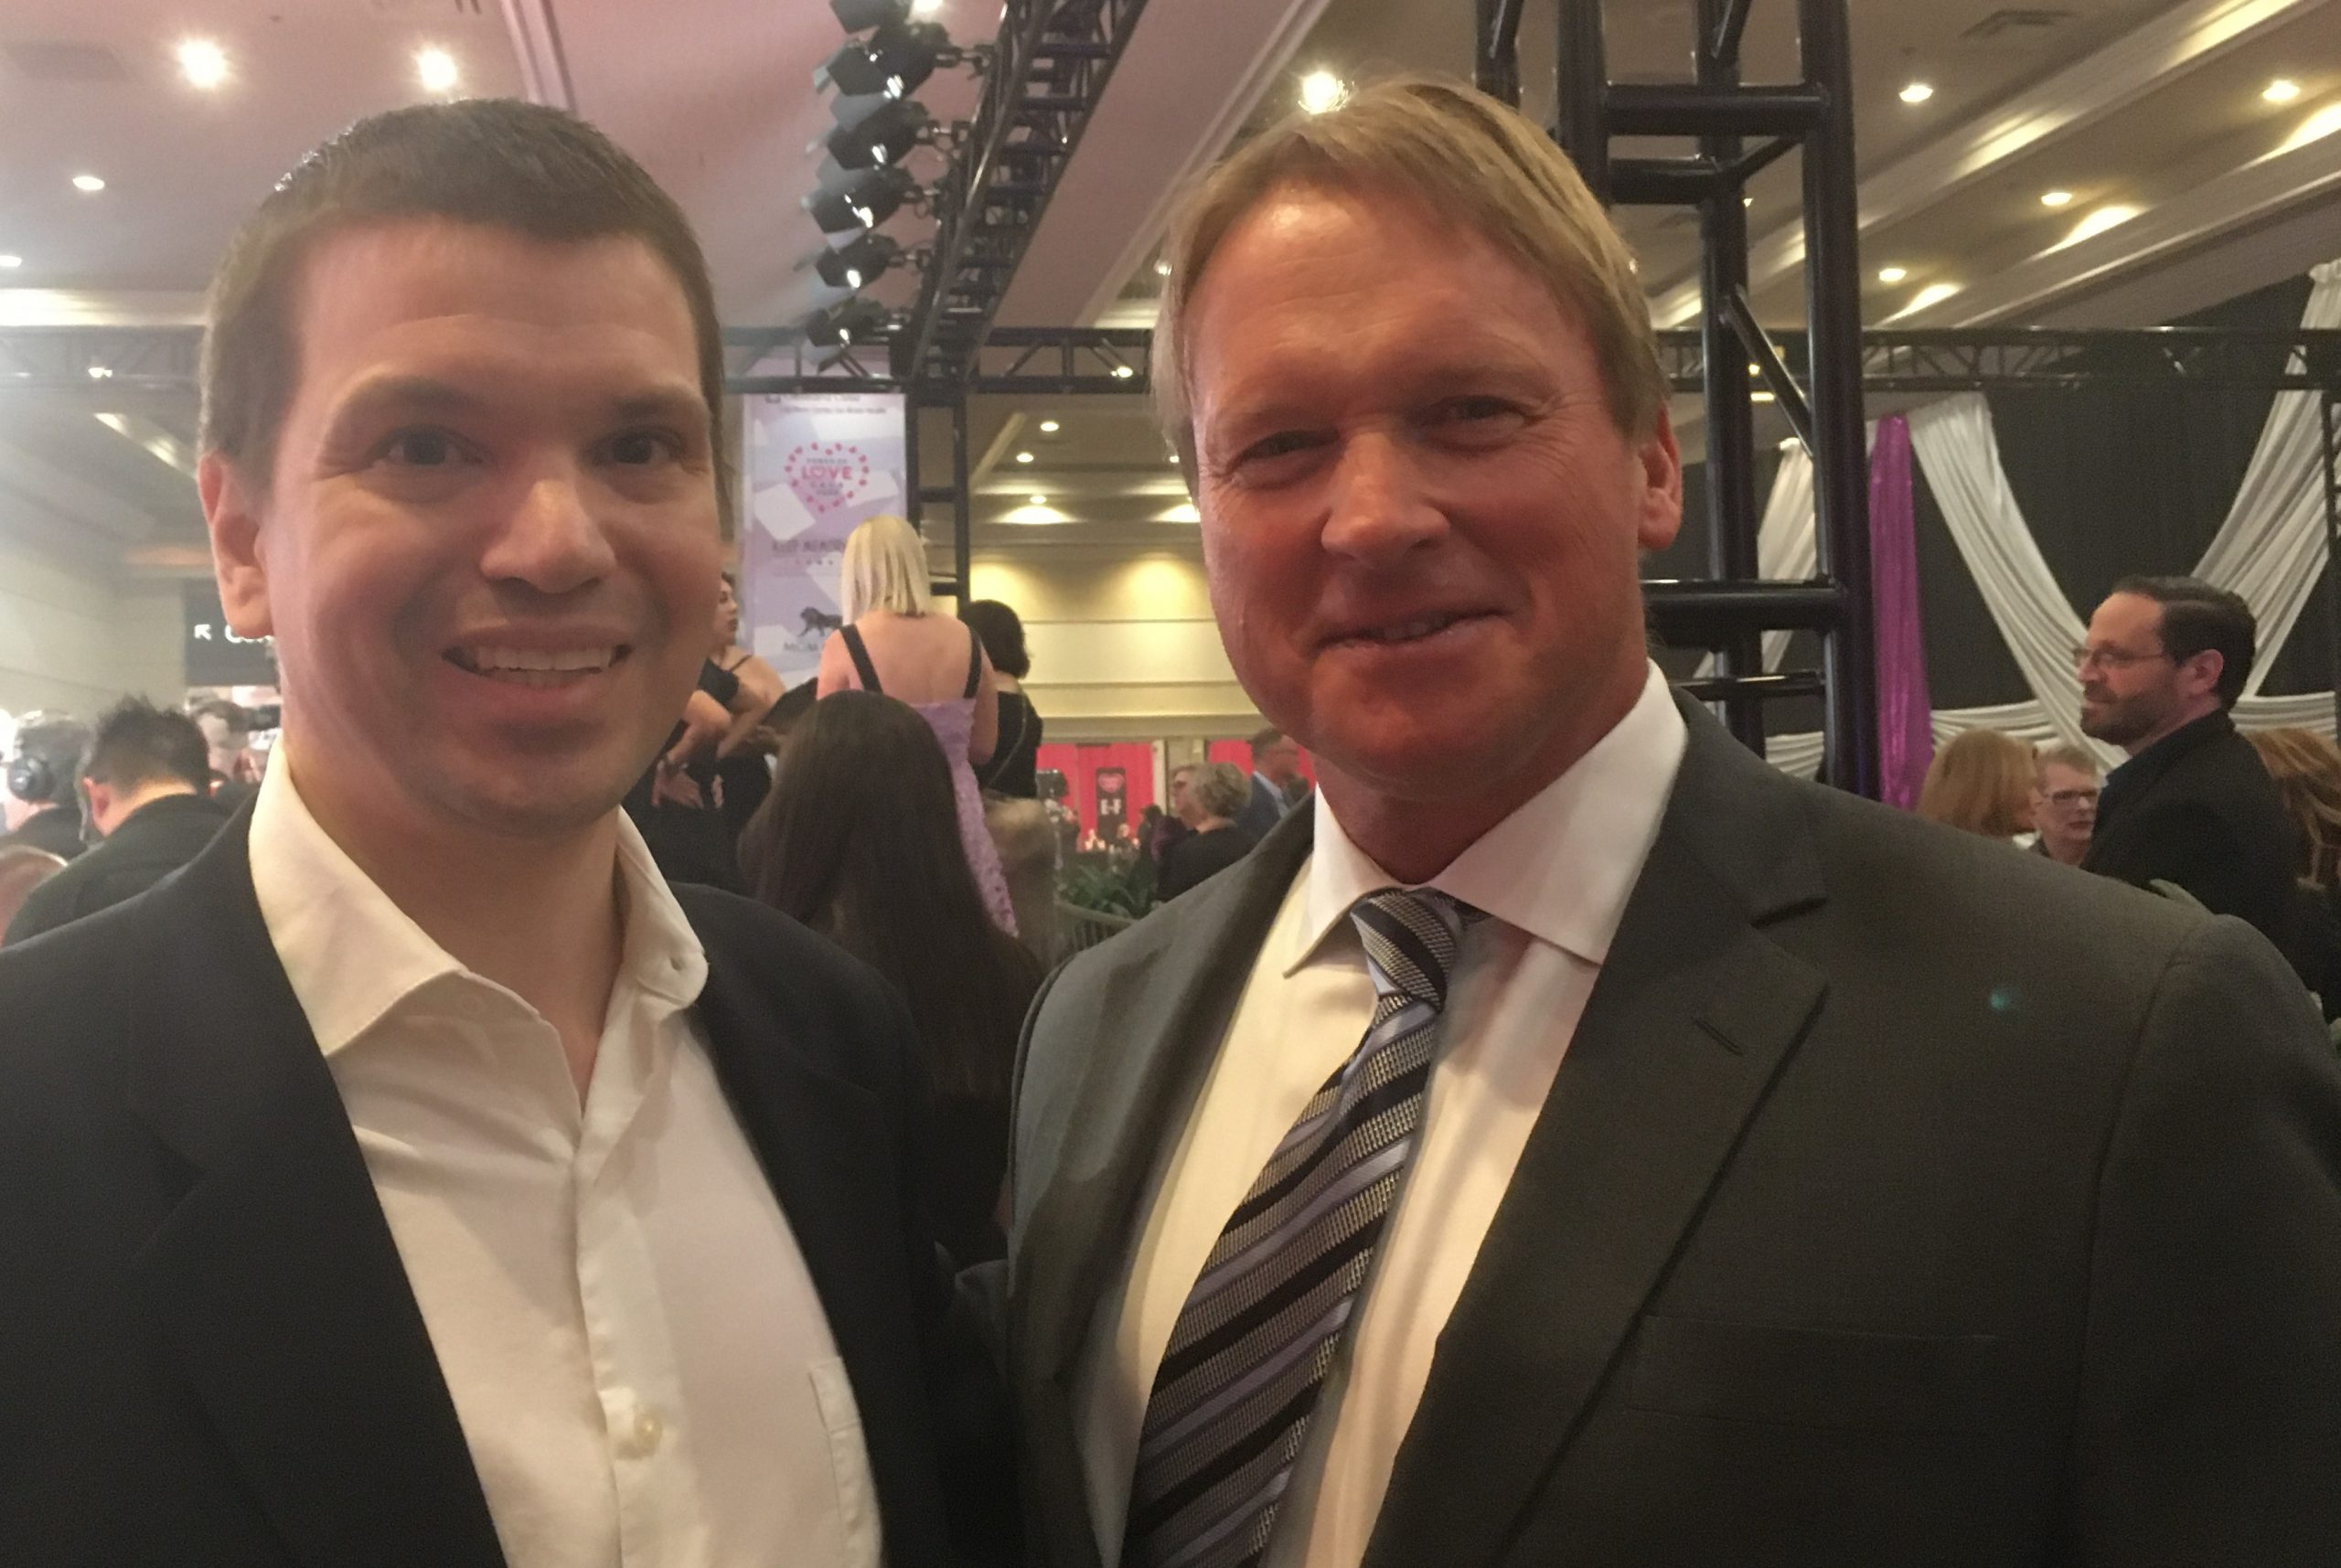 Chris Yandek, Jon Gruden, Power of Love Gala 2020, Jon Gruden Las Vegas Raiders, Chris Yandek, CYInterview, Jon Gruden 2020, Chris Yandek Jon Gruden, Jon Gruden Las Vegas Raiders